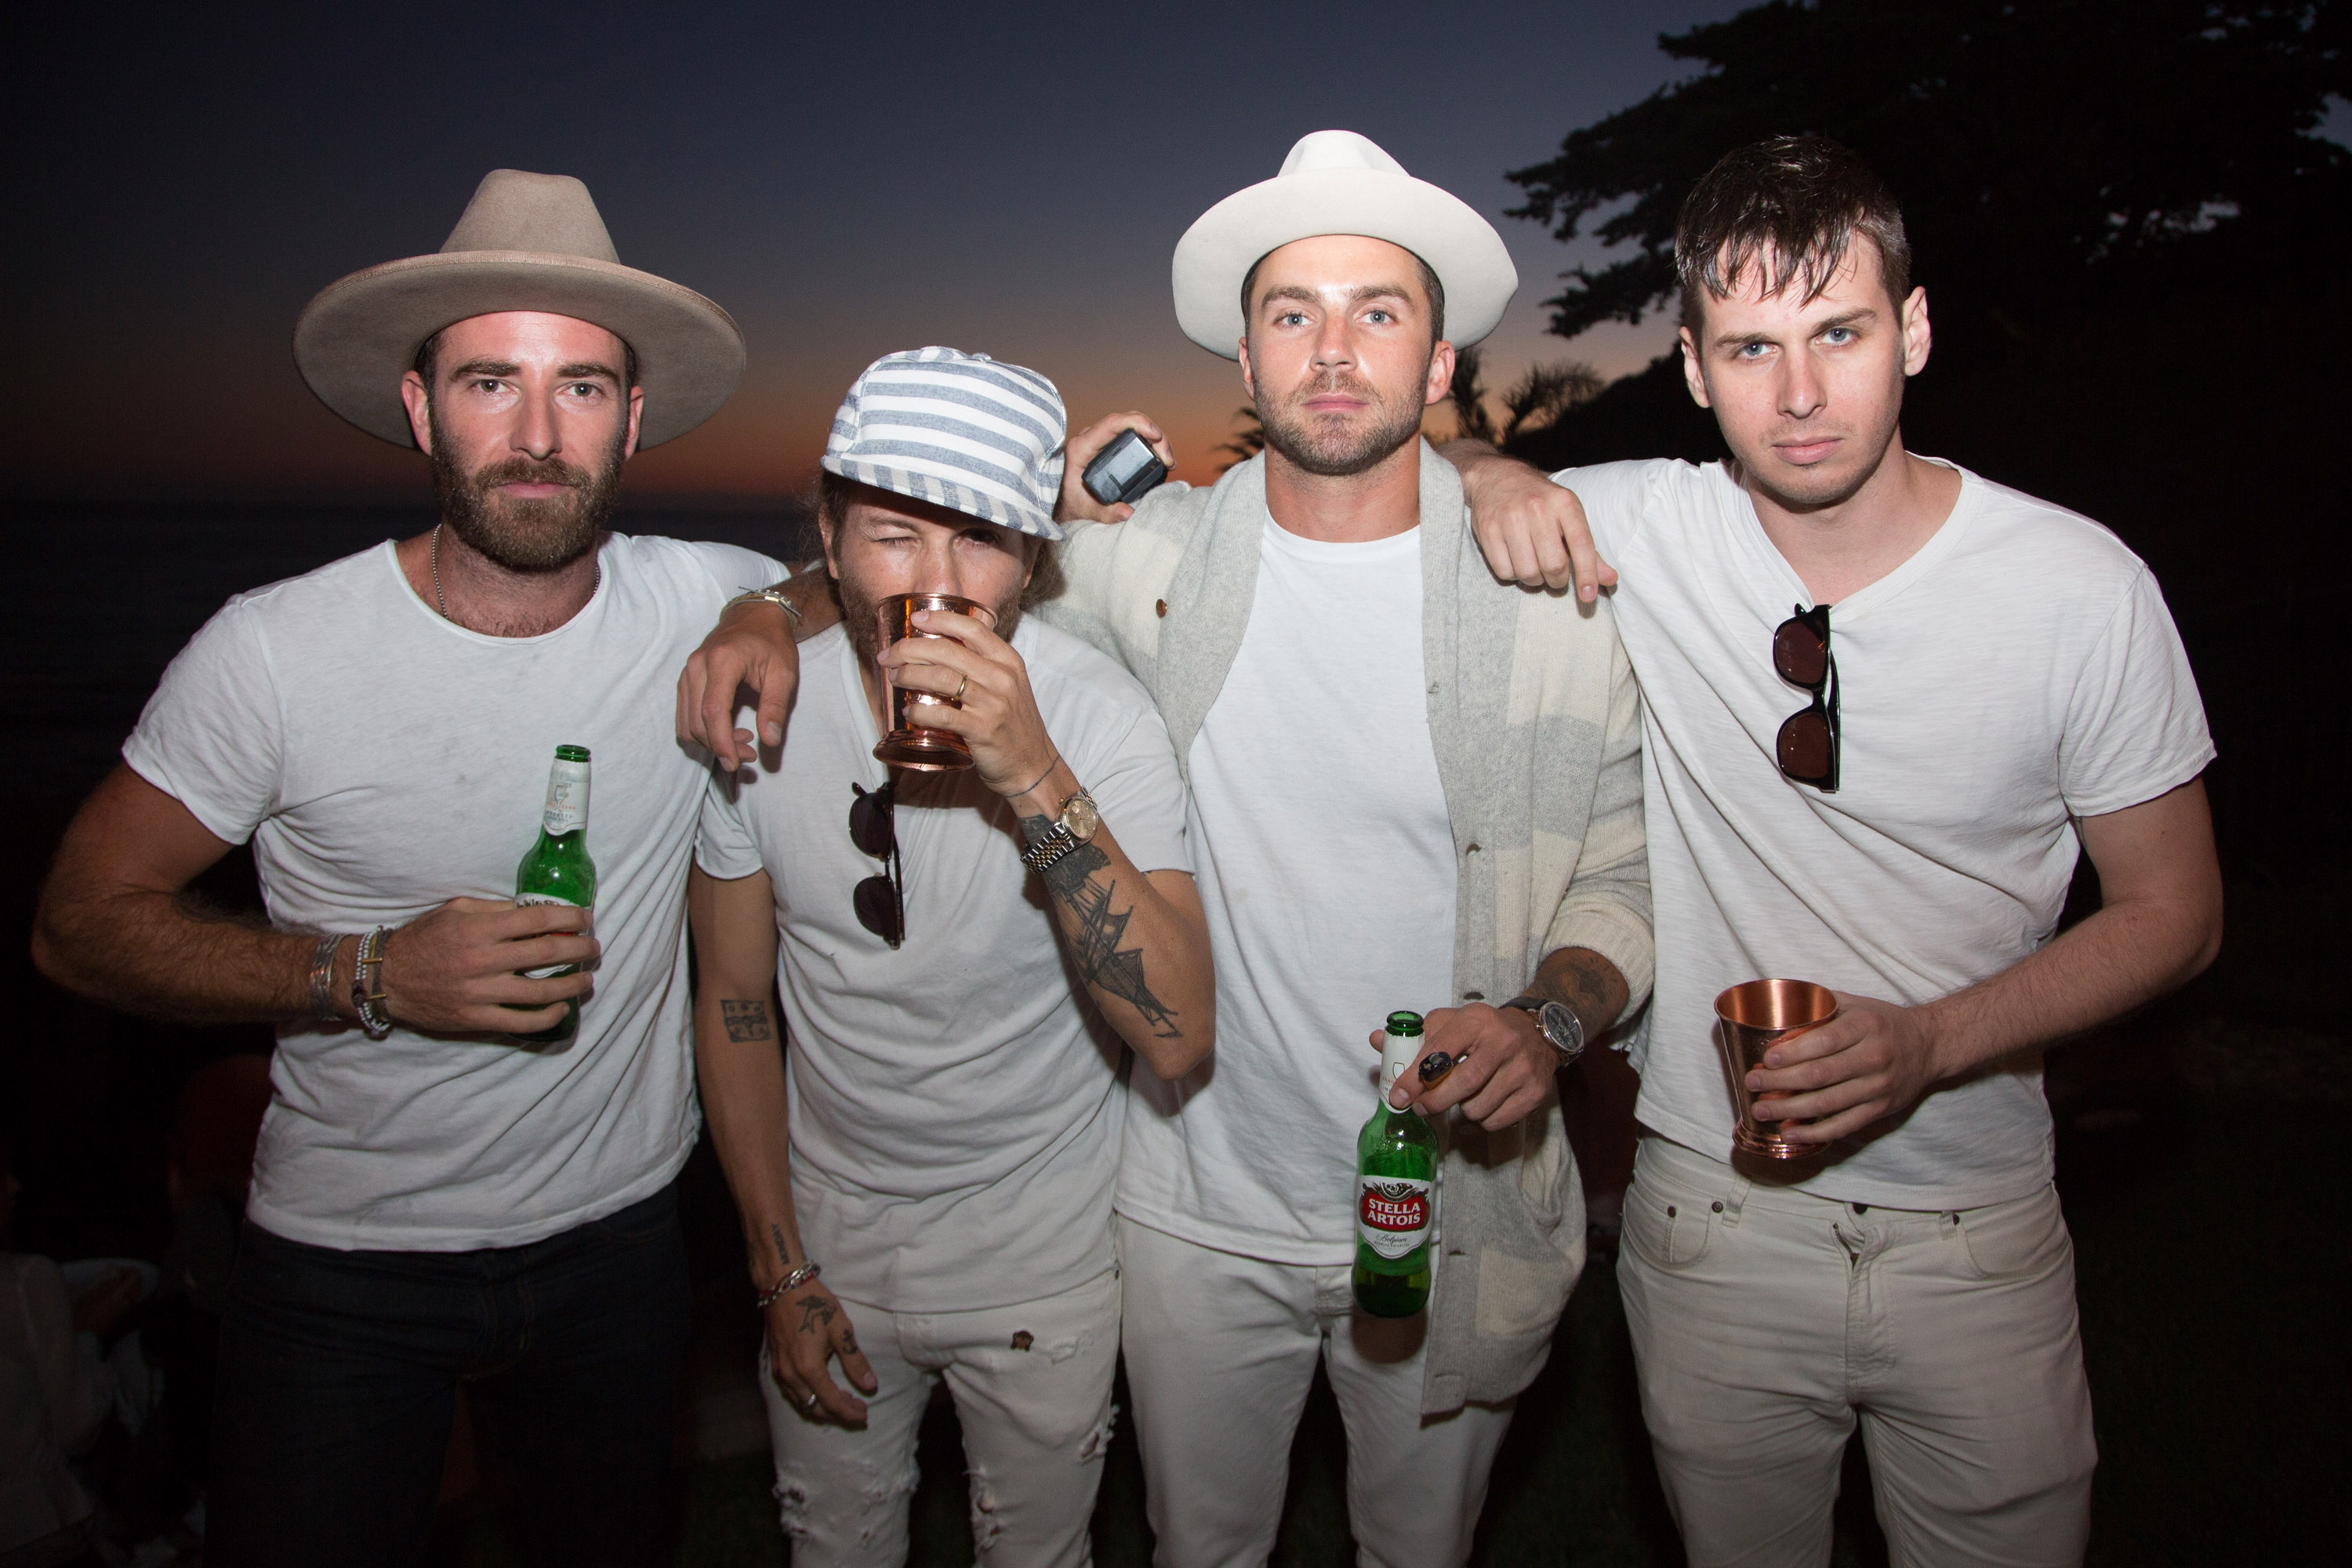 MALIBU, CA - SEPTEMBER 17: Mark Foster (R) of Foster the People and guest attend the Treats! Magazine 4th Annual White Party Sponsored By Stella Artois on September 17, 2016 in Malibu, California. (Photo by Gabriel Olsen/WireImage)